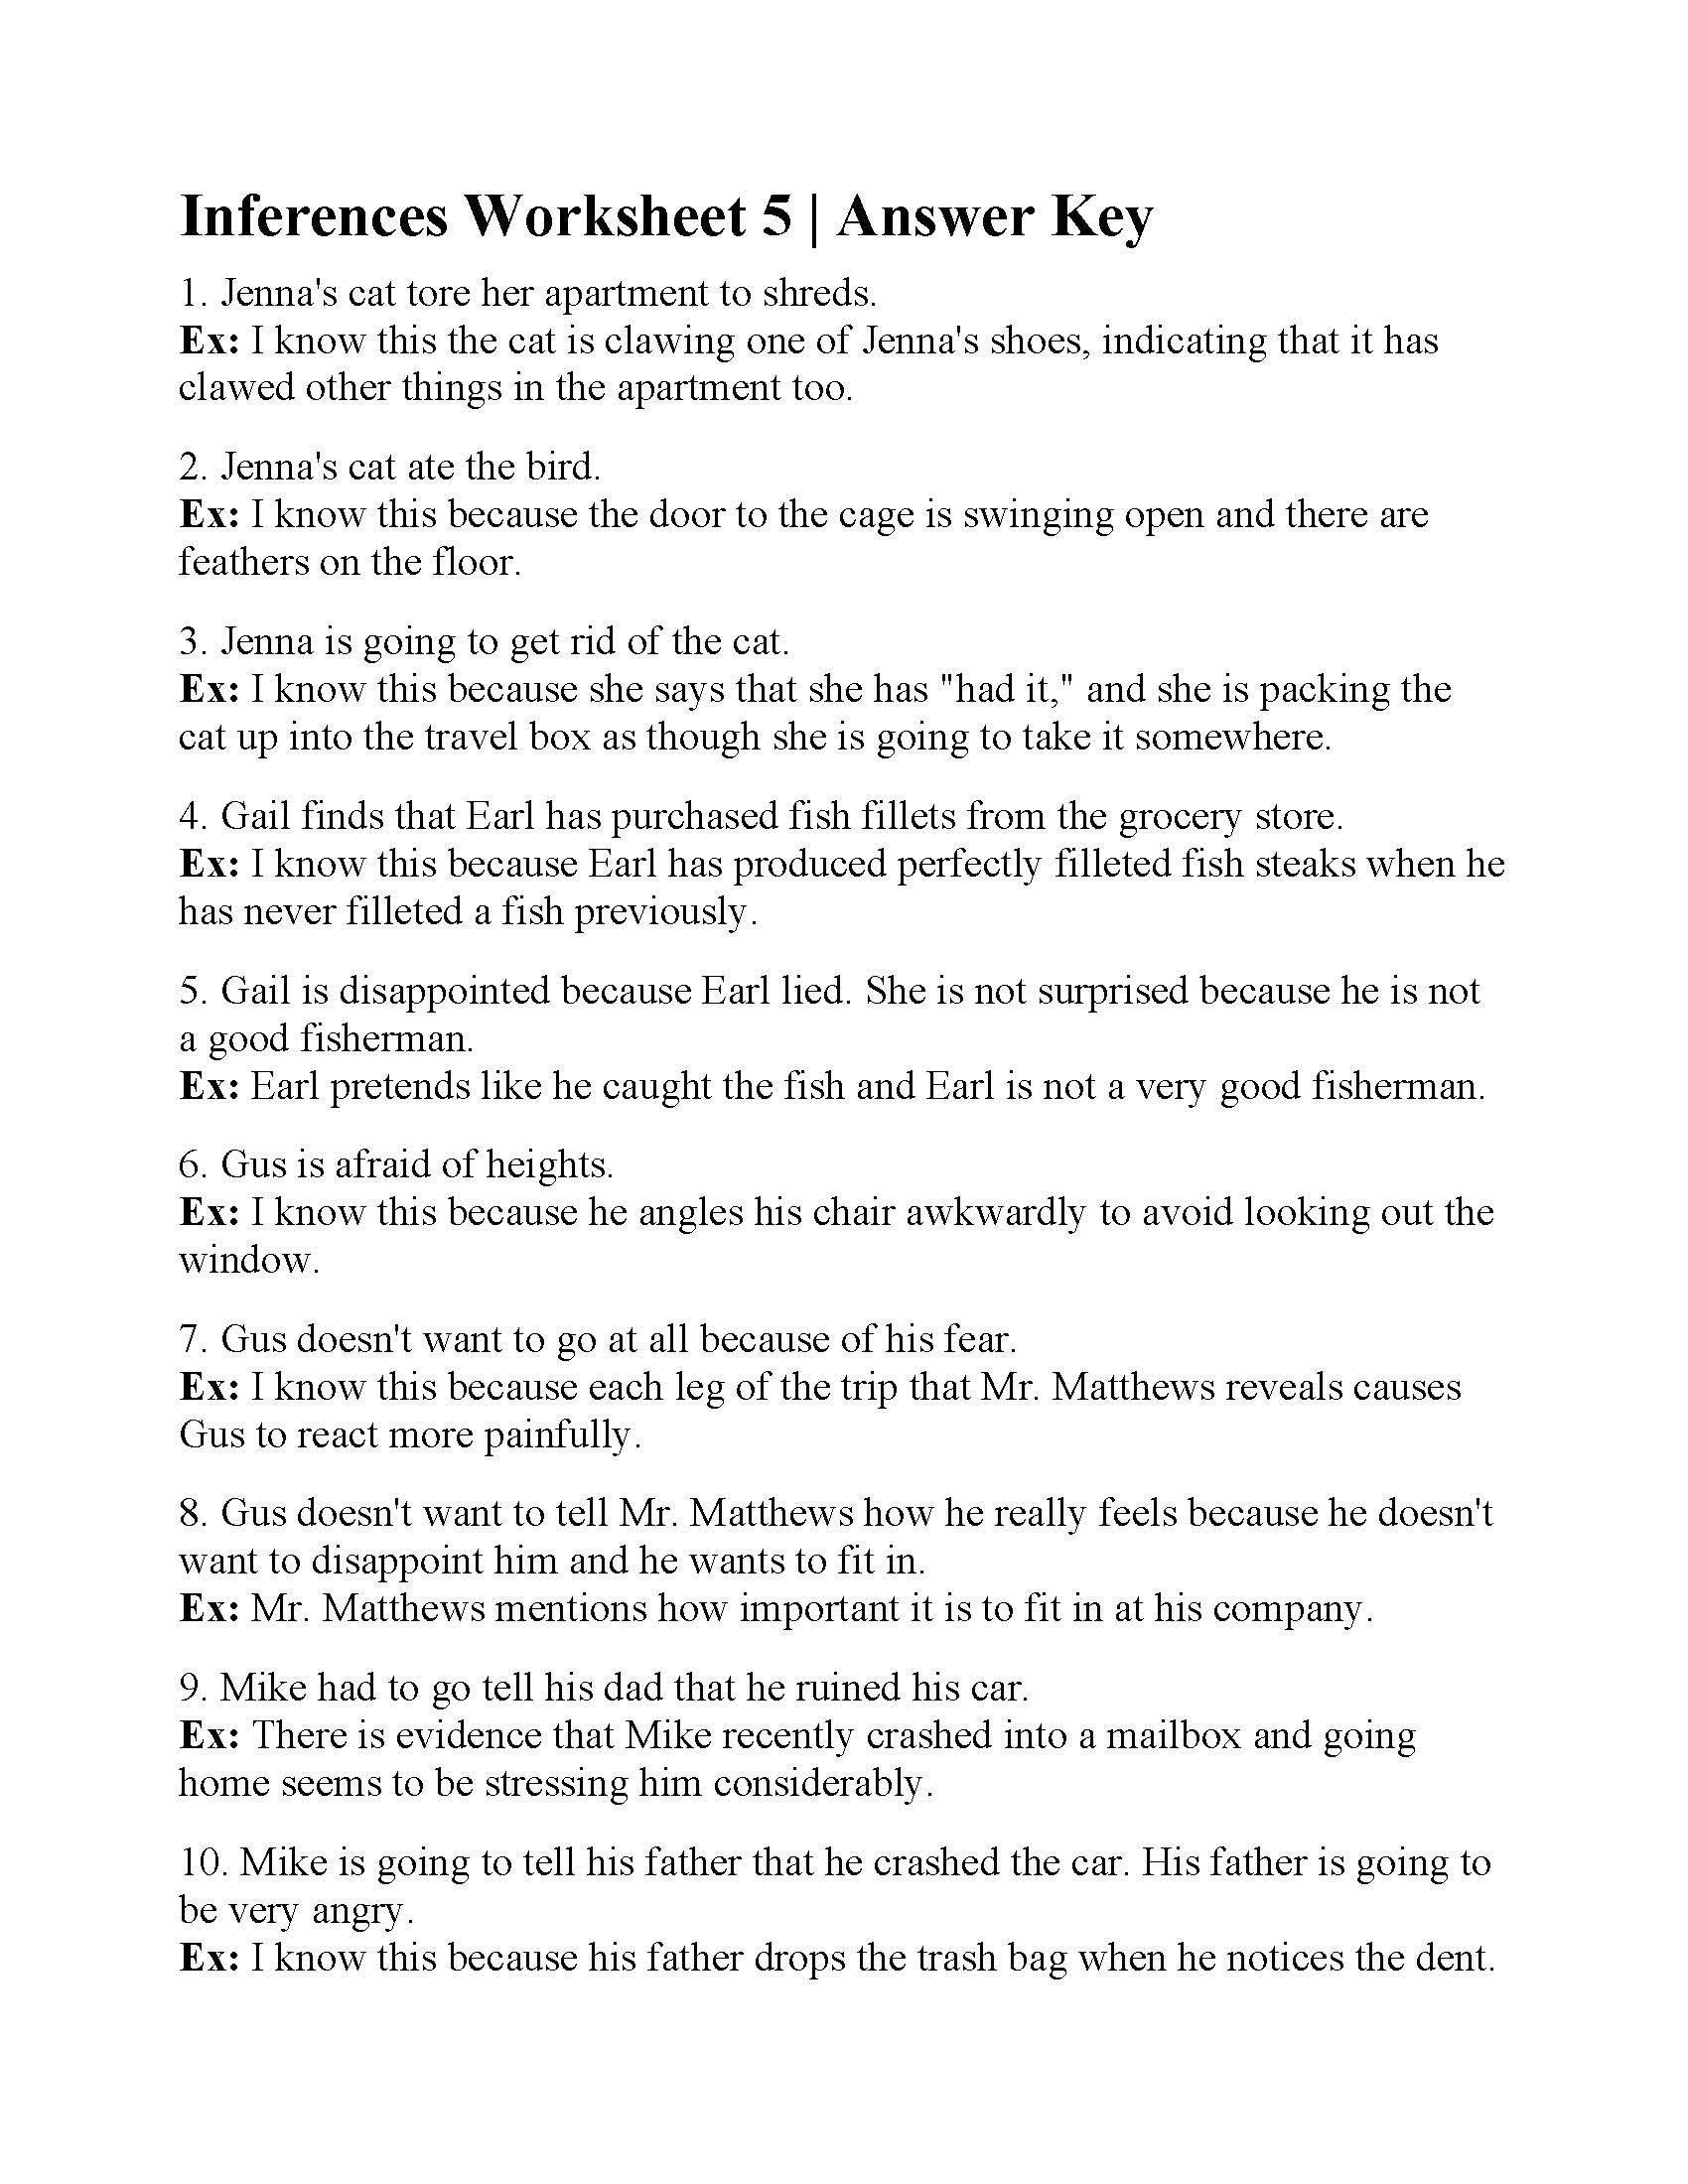 Making Inferences Worksheet Pdf Hiddenfashionhistory Page 2 Multiplication Worksheets